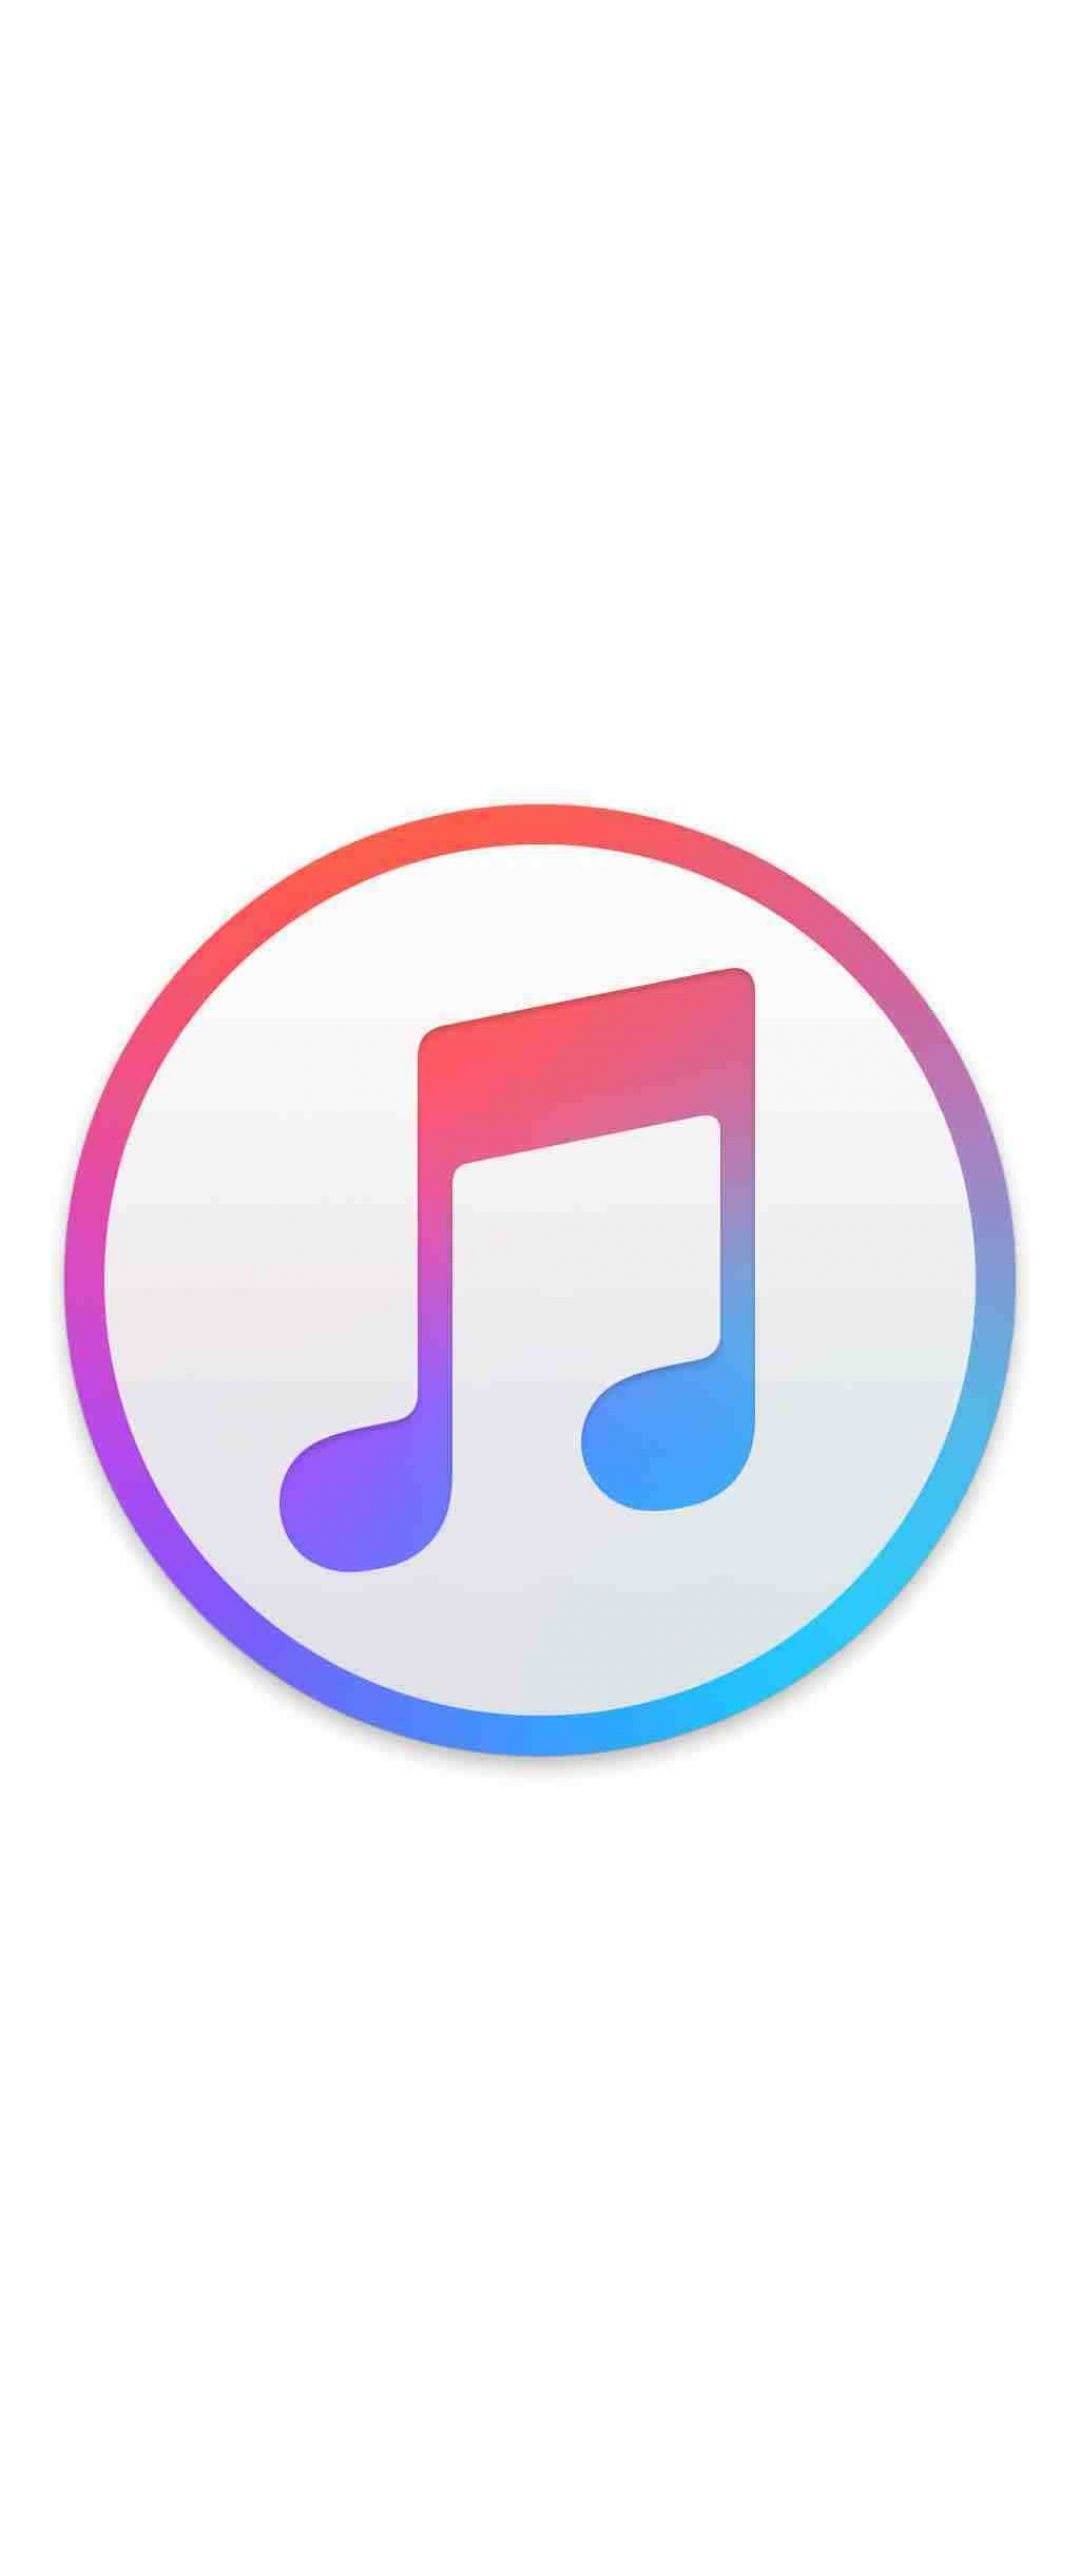 Apple elimina una característica principal de iTunes para Windows